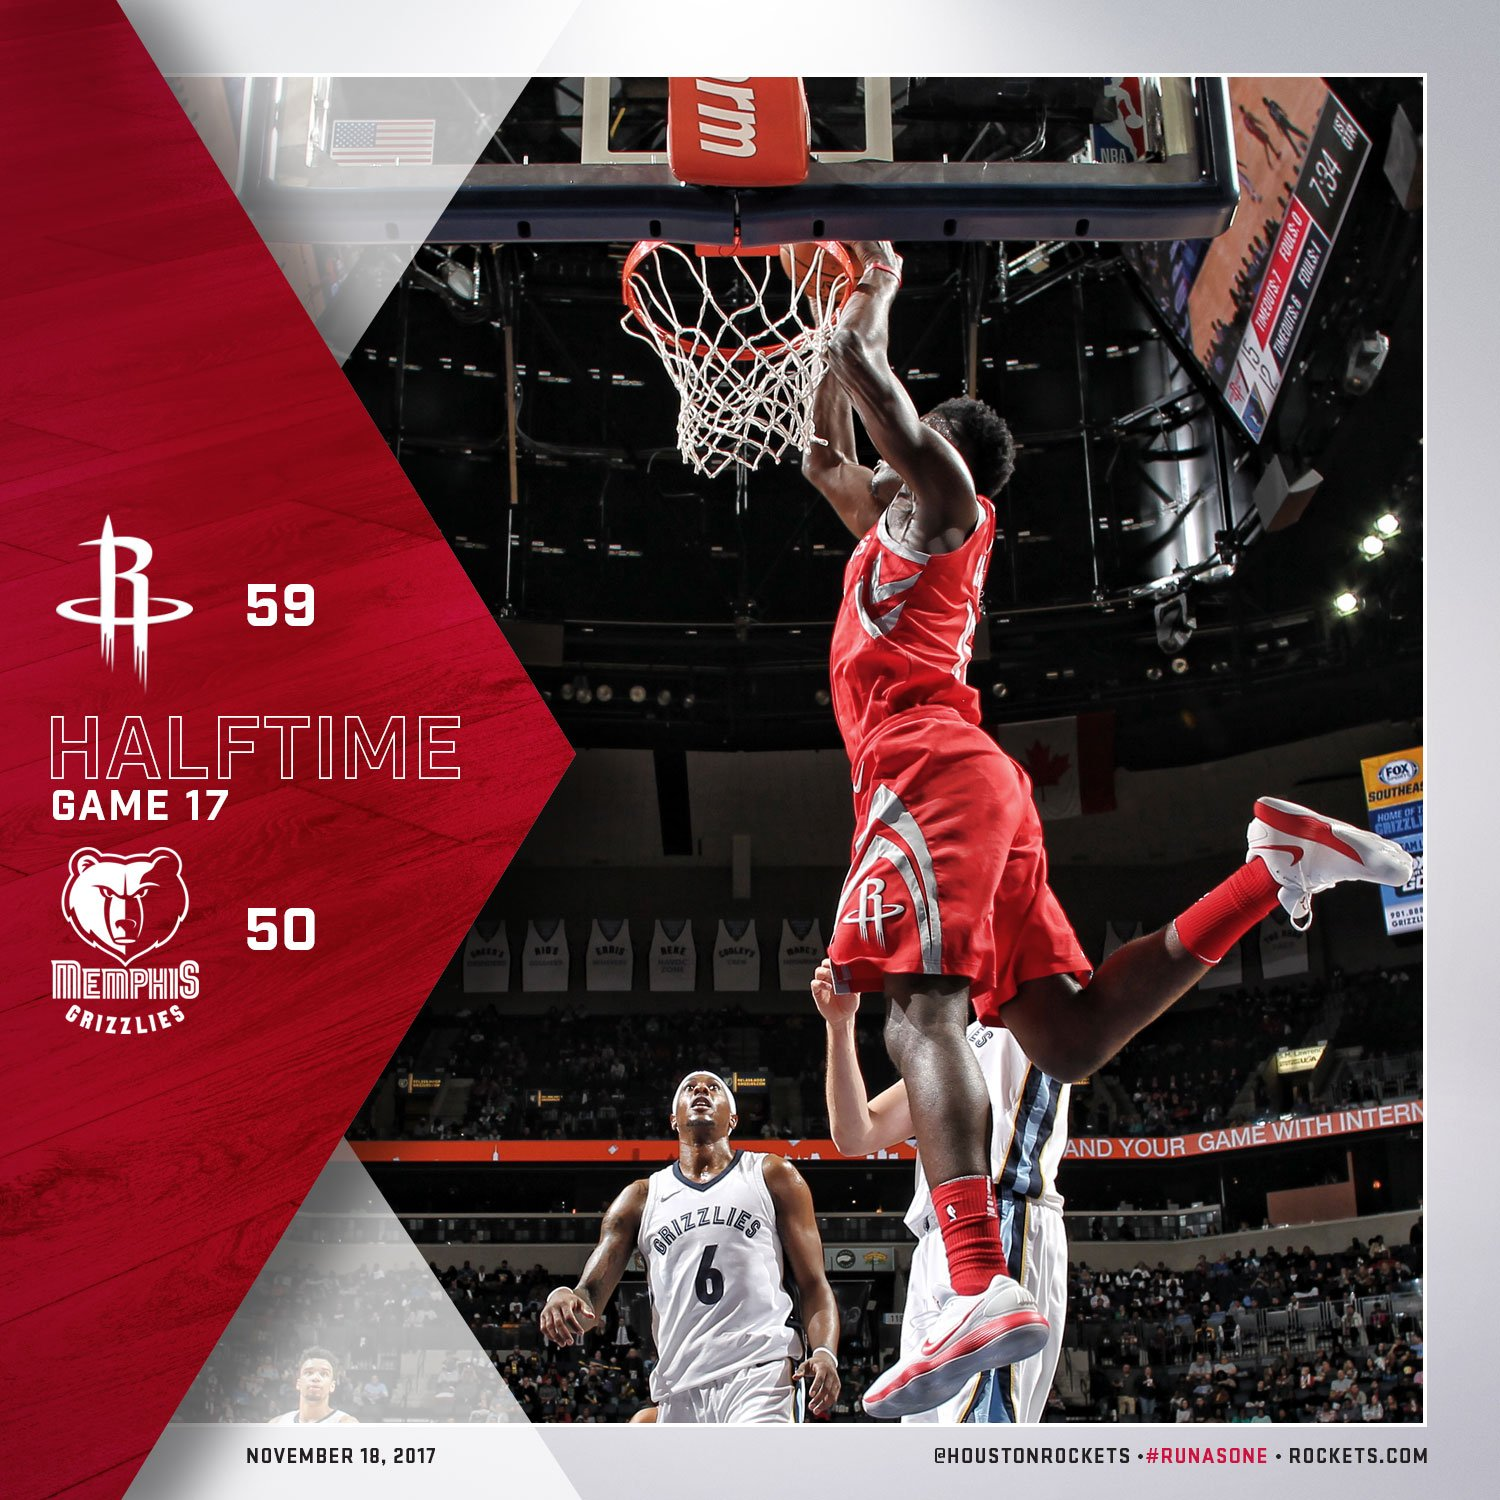 Halftime in Memphis.   �� @JHarden13 14pts �� @CP3 12pts �� @CapelaClint 11pts/9reb https://t.co/YJLQisKFFl